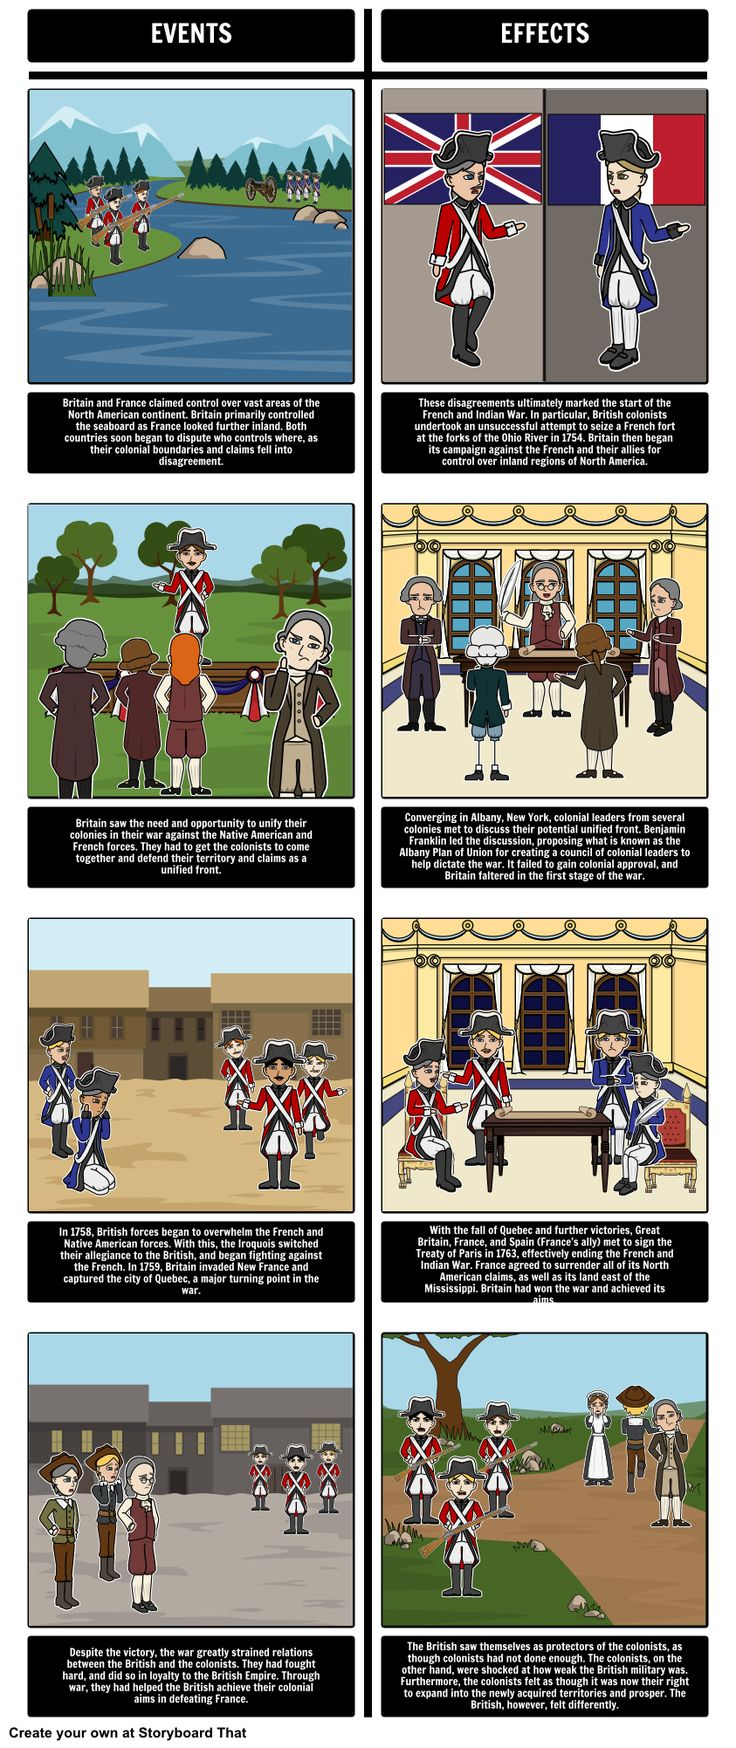 best ideas about american revolution american causes of the american revolution the french and n war by creating a t